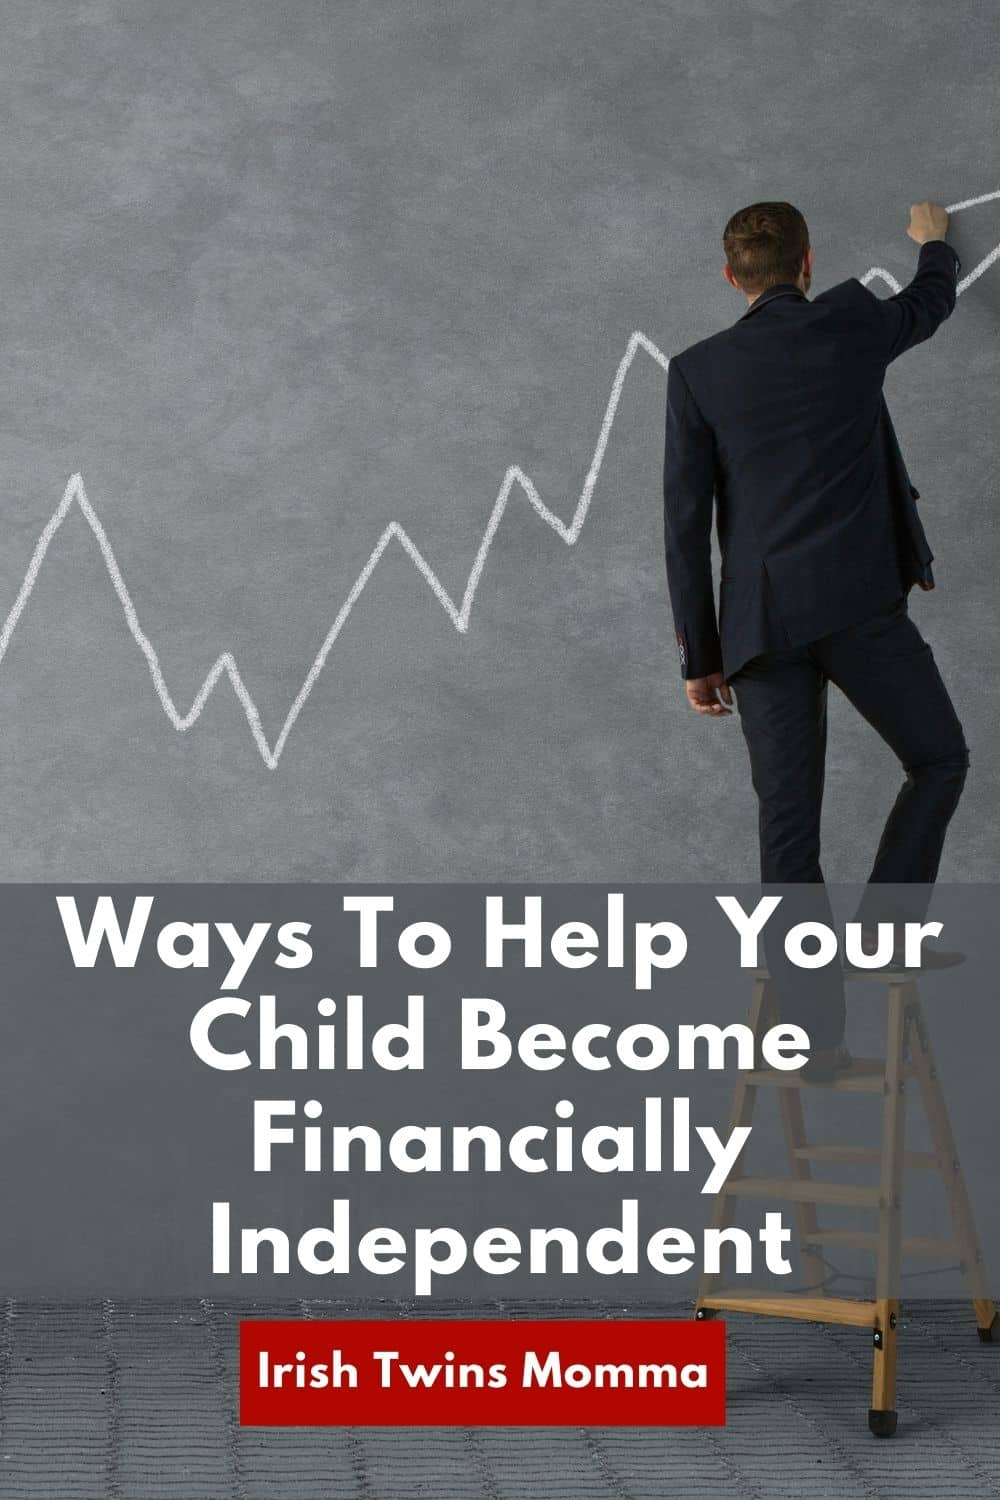 Ways To Help Your Child Become Financially Independent